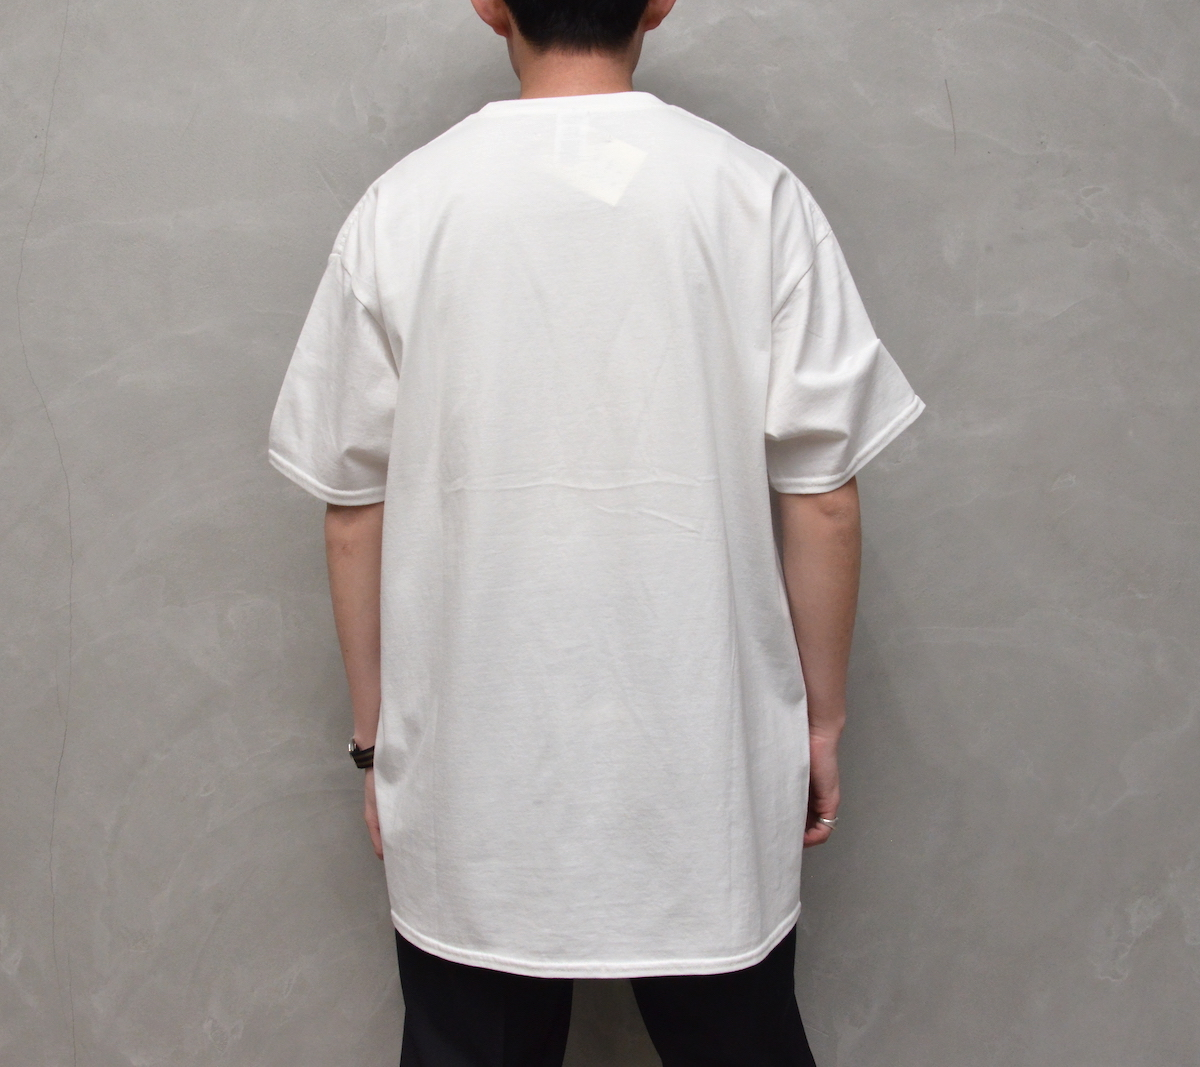 AUGUSTE-PRESENTATION「 土偶リメイク S/S TEE 」